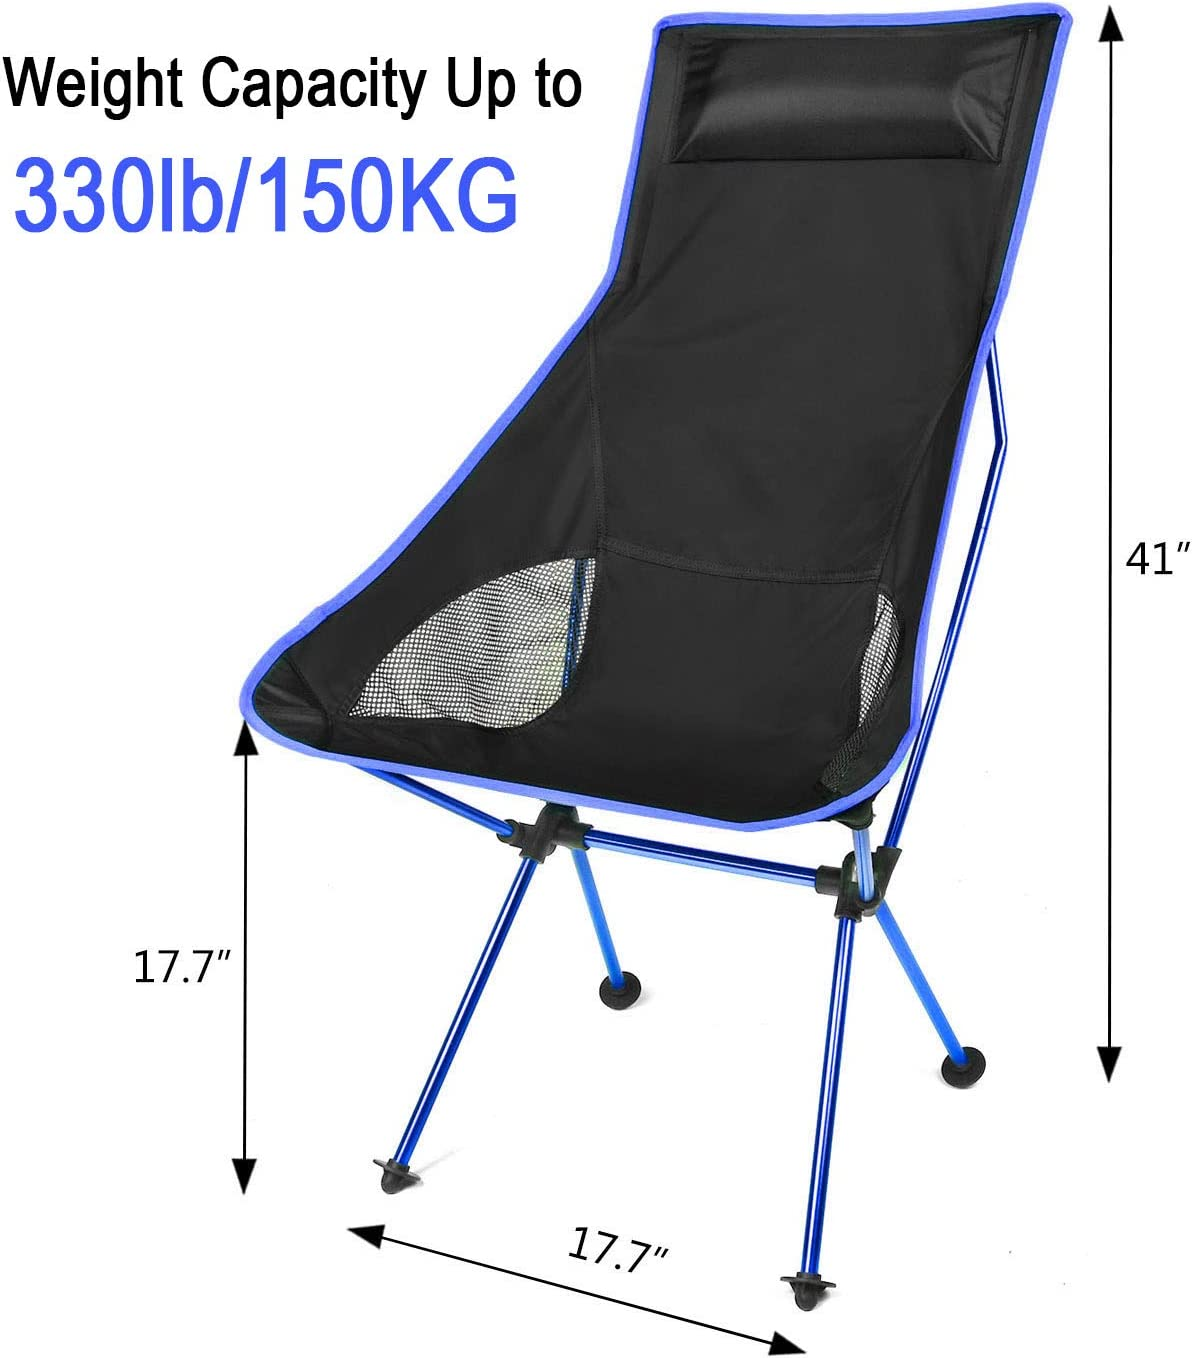 BBQ Portable Camp Chair with Headrest and Carry Bag Camping Chairs for Outdoor Picnic Dark Blue Hiking Fishing Lightweight Folding Camping Chair